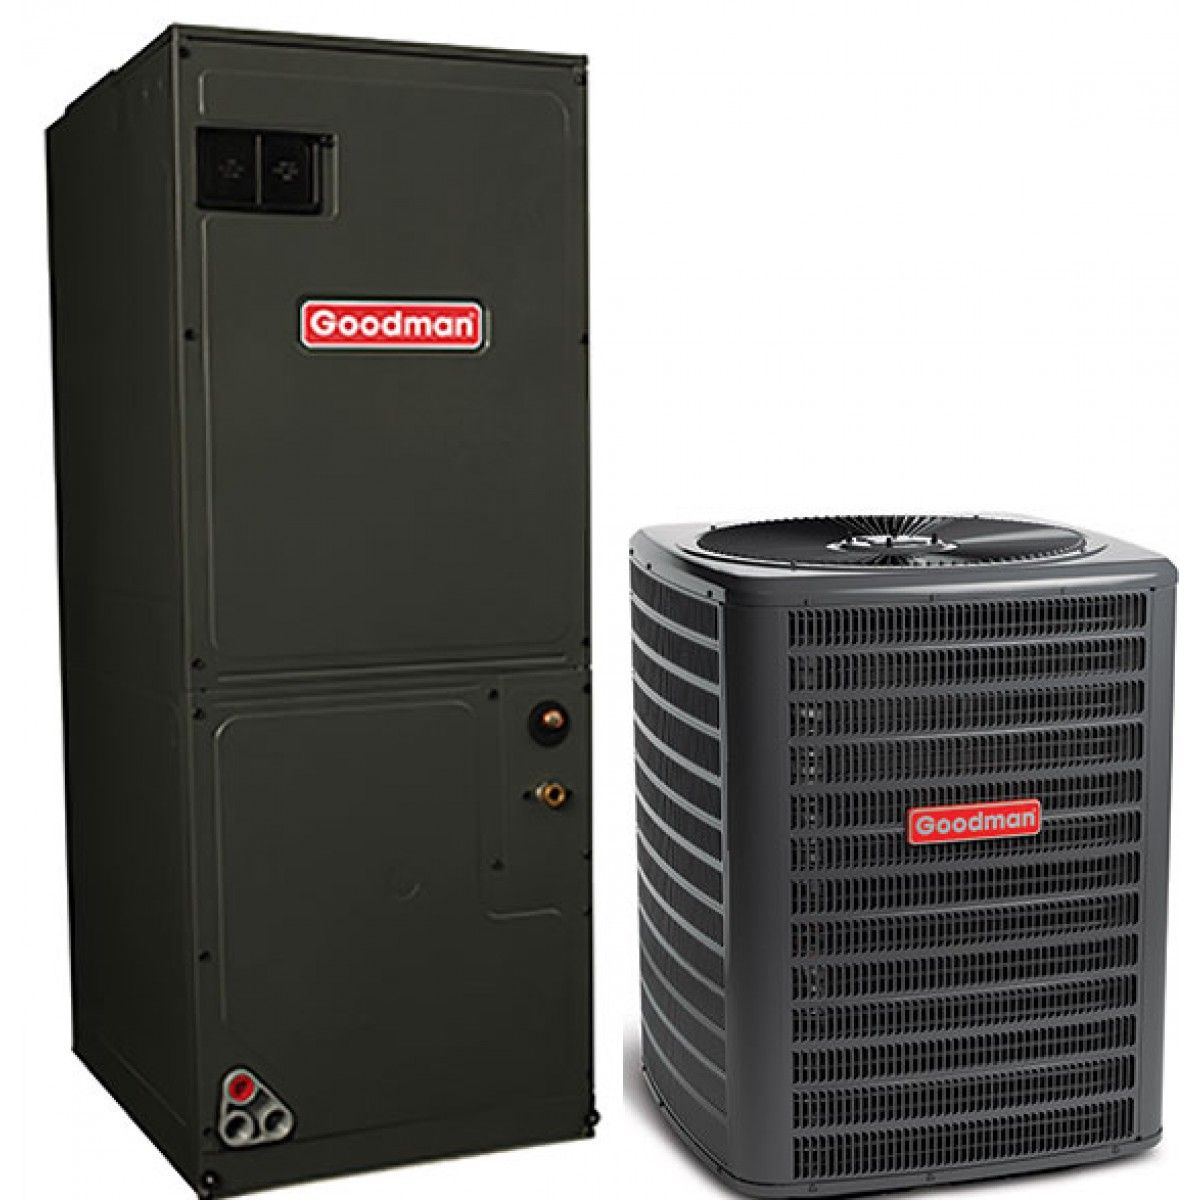 #B11A1D Goodman 5.0 Ton 16 SEER Single Stage Air Conditioning  Best 3223 Goodman Heat And Air photos with 1200x1200 px on helpvideos.info - Air Conditioners, Air Coolers and more